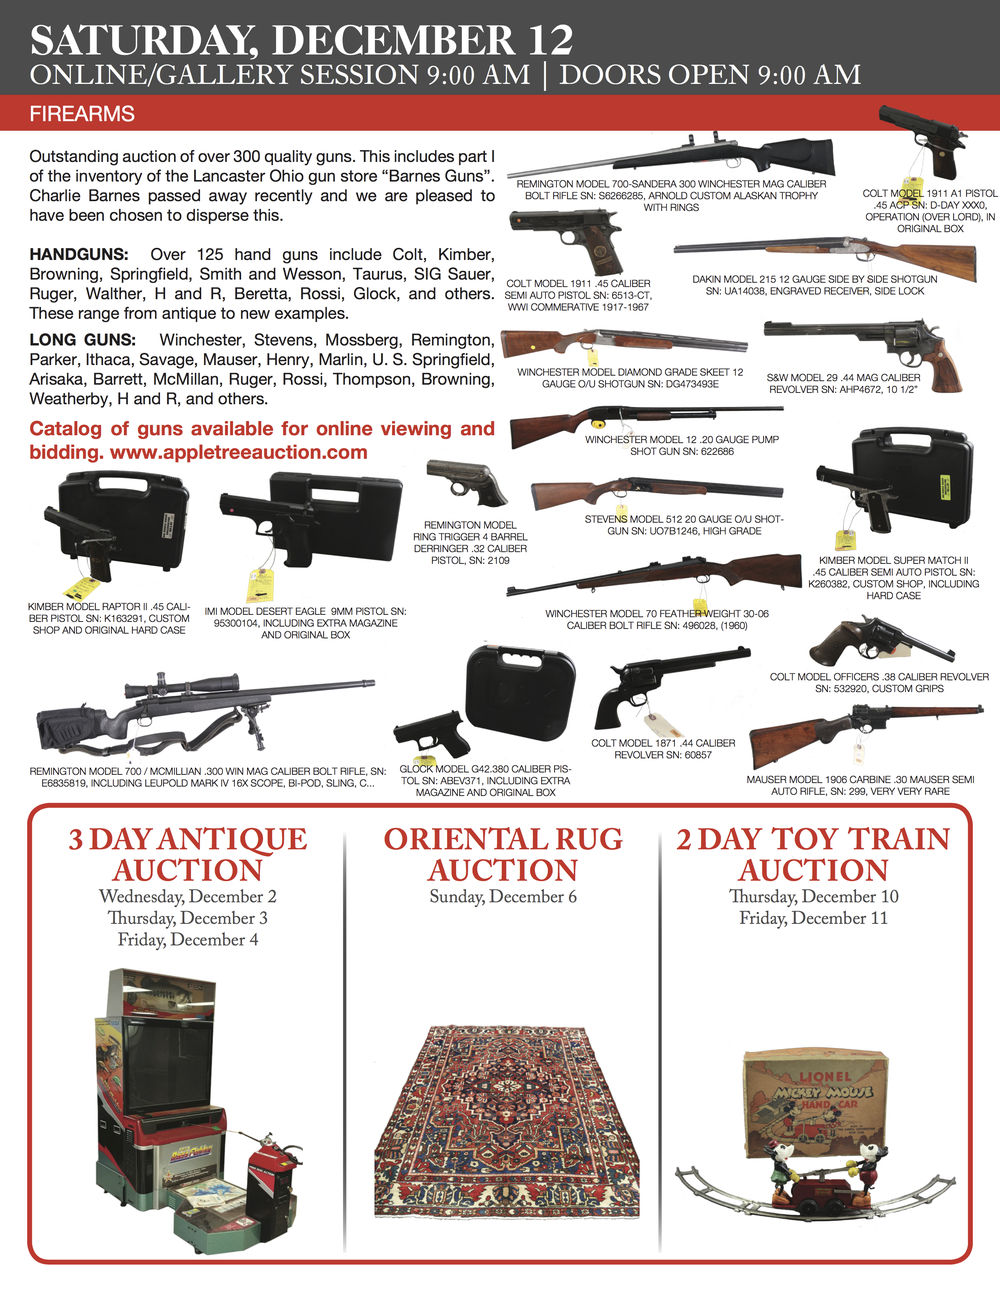 Military & Firearms Dec Auction 15 high res_3.jpg